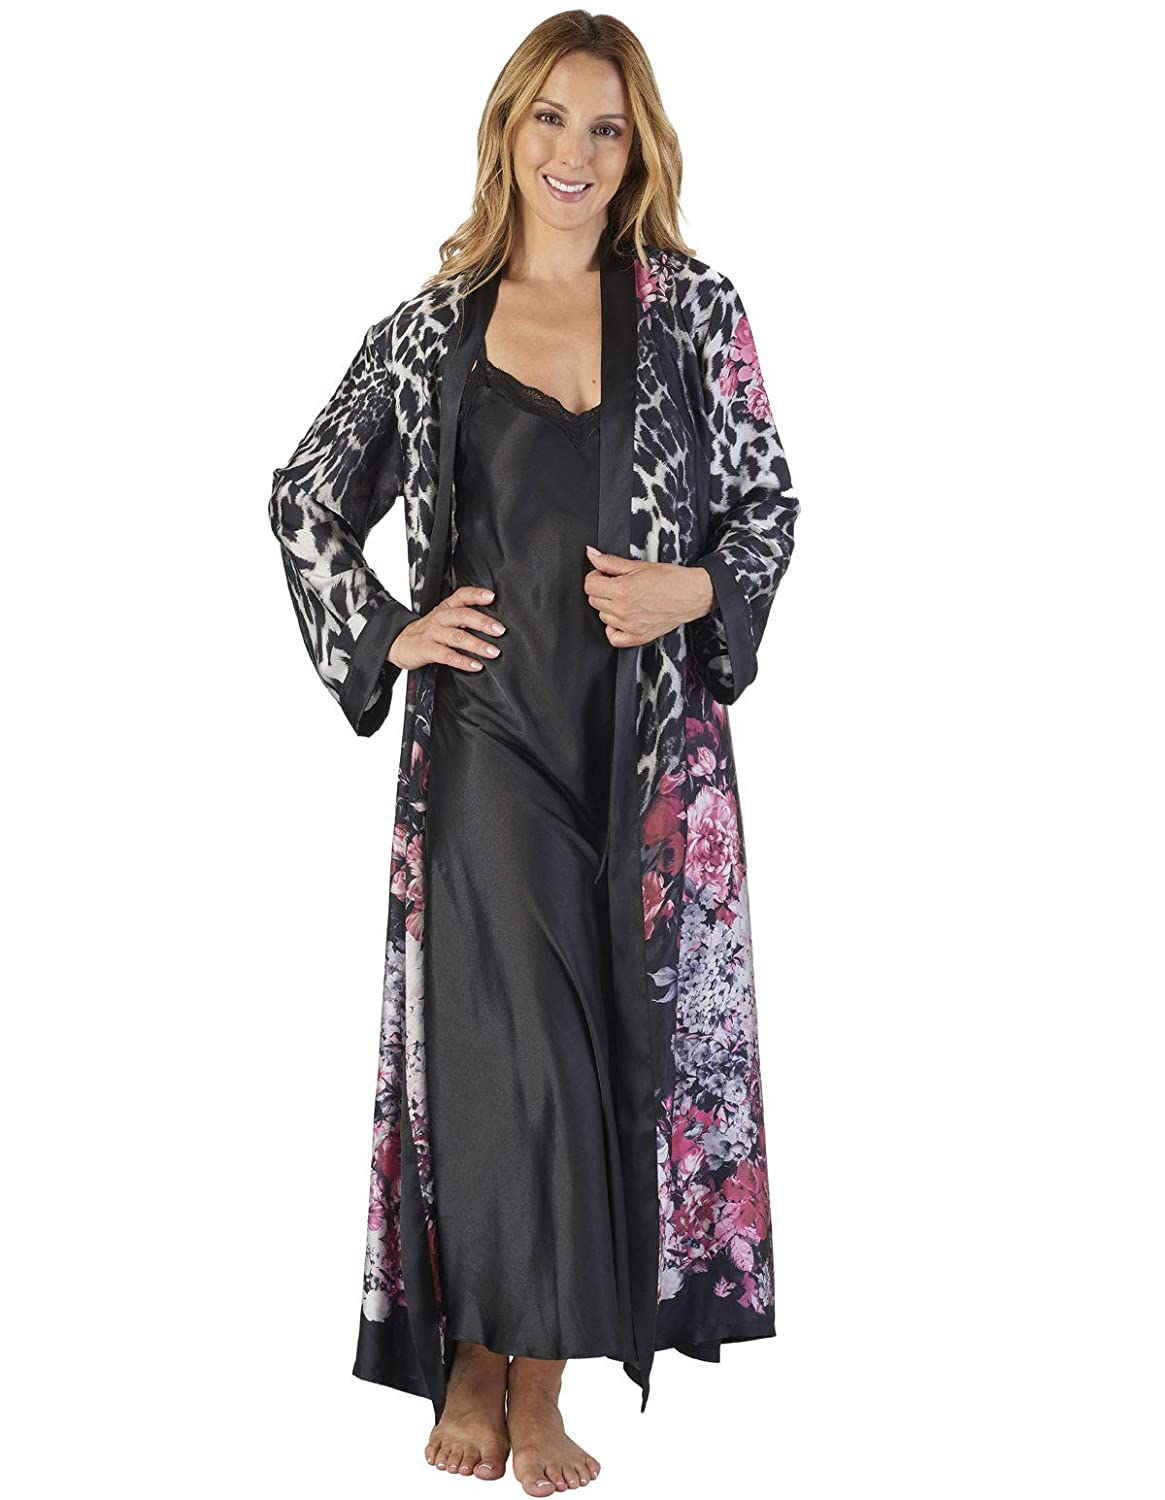 TALLA X-Large. Slenderella GL2786 Women's Animal Satin Floral Kimono and Nightdress Set